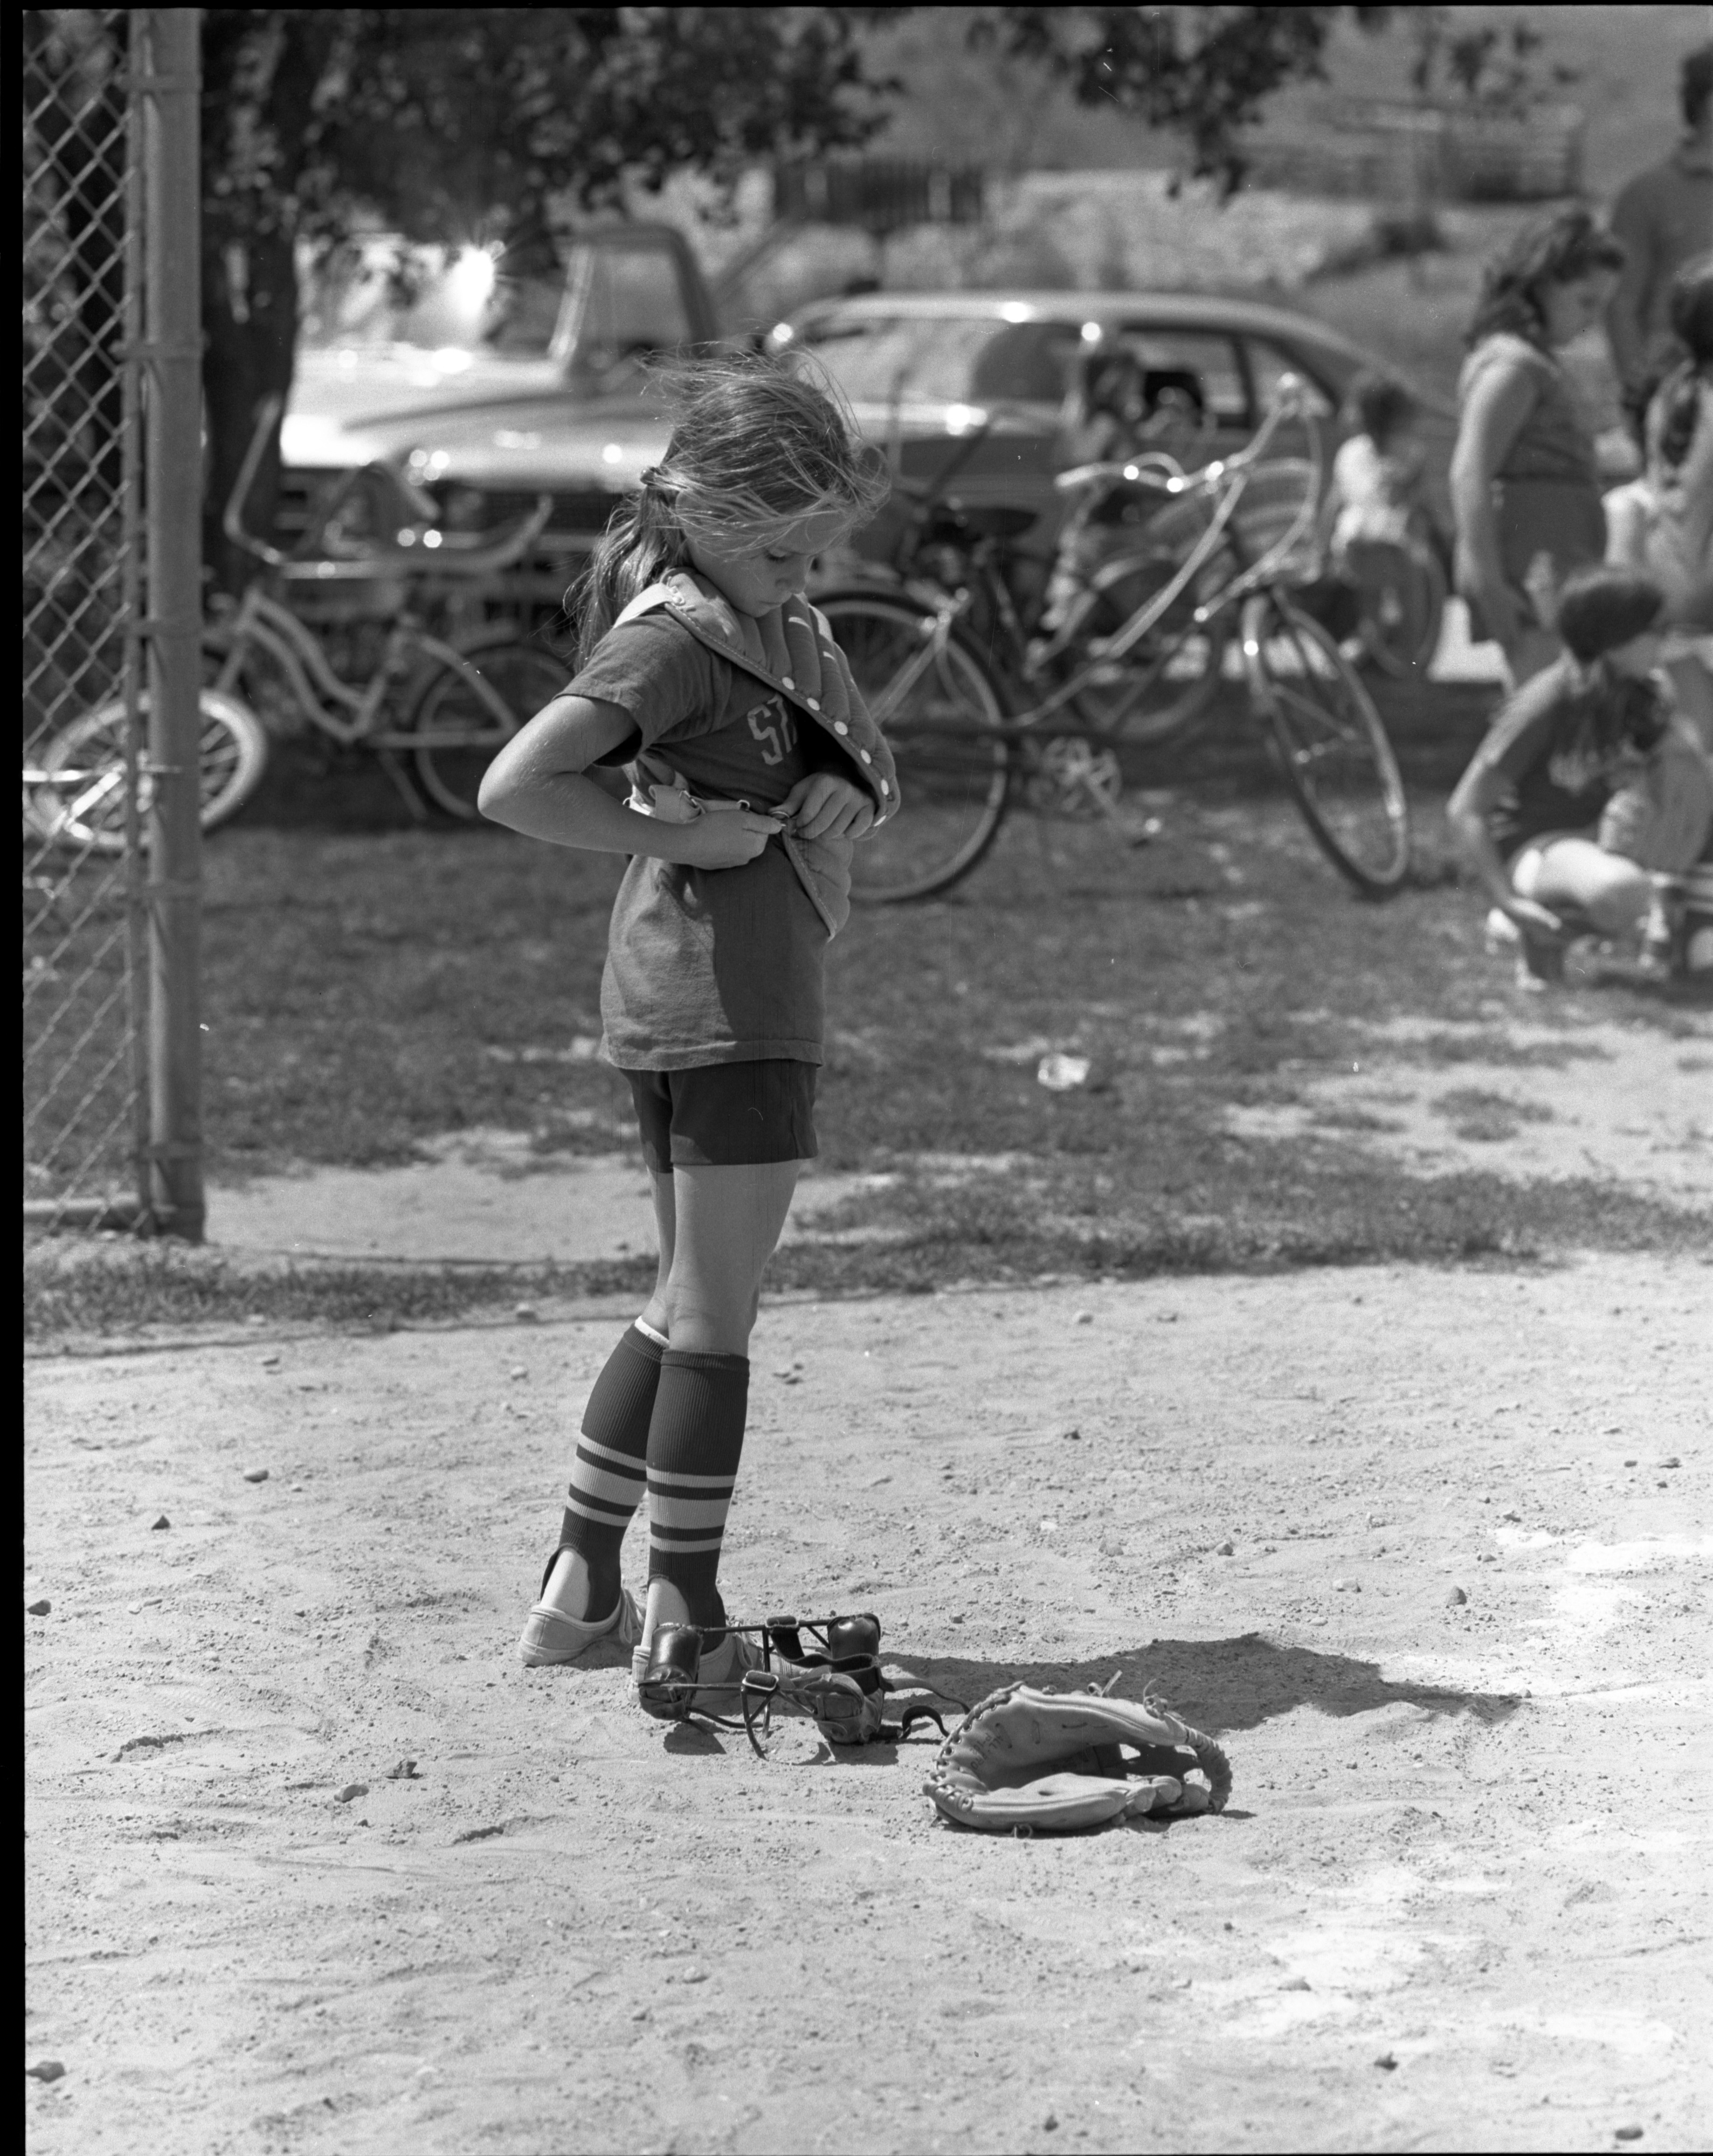 Girls Softball - Wendy Pegan Puts On Her Catcher's Gear, July 1972 image